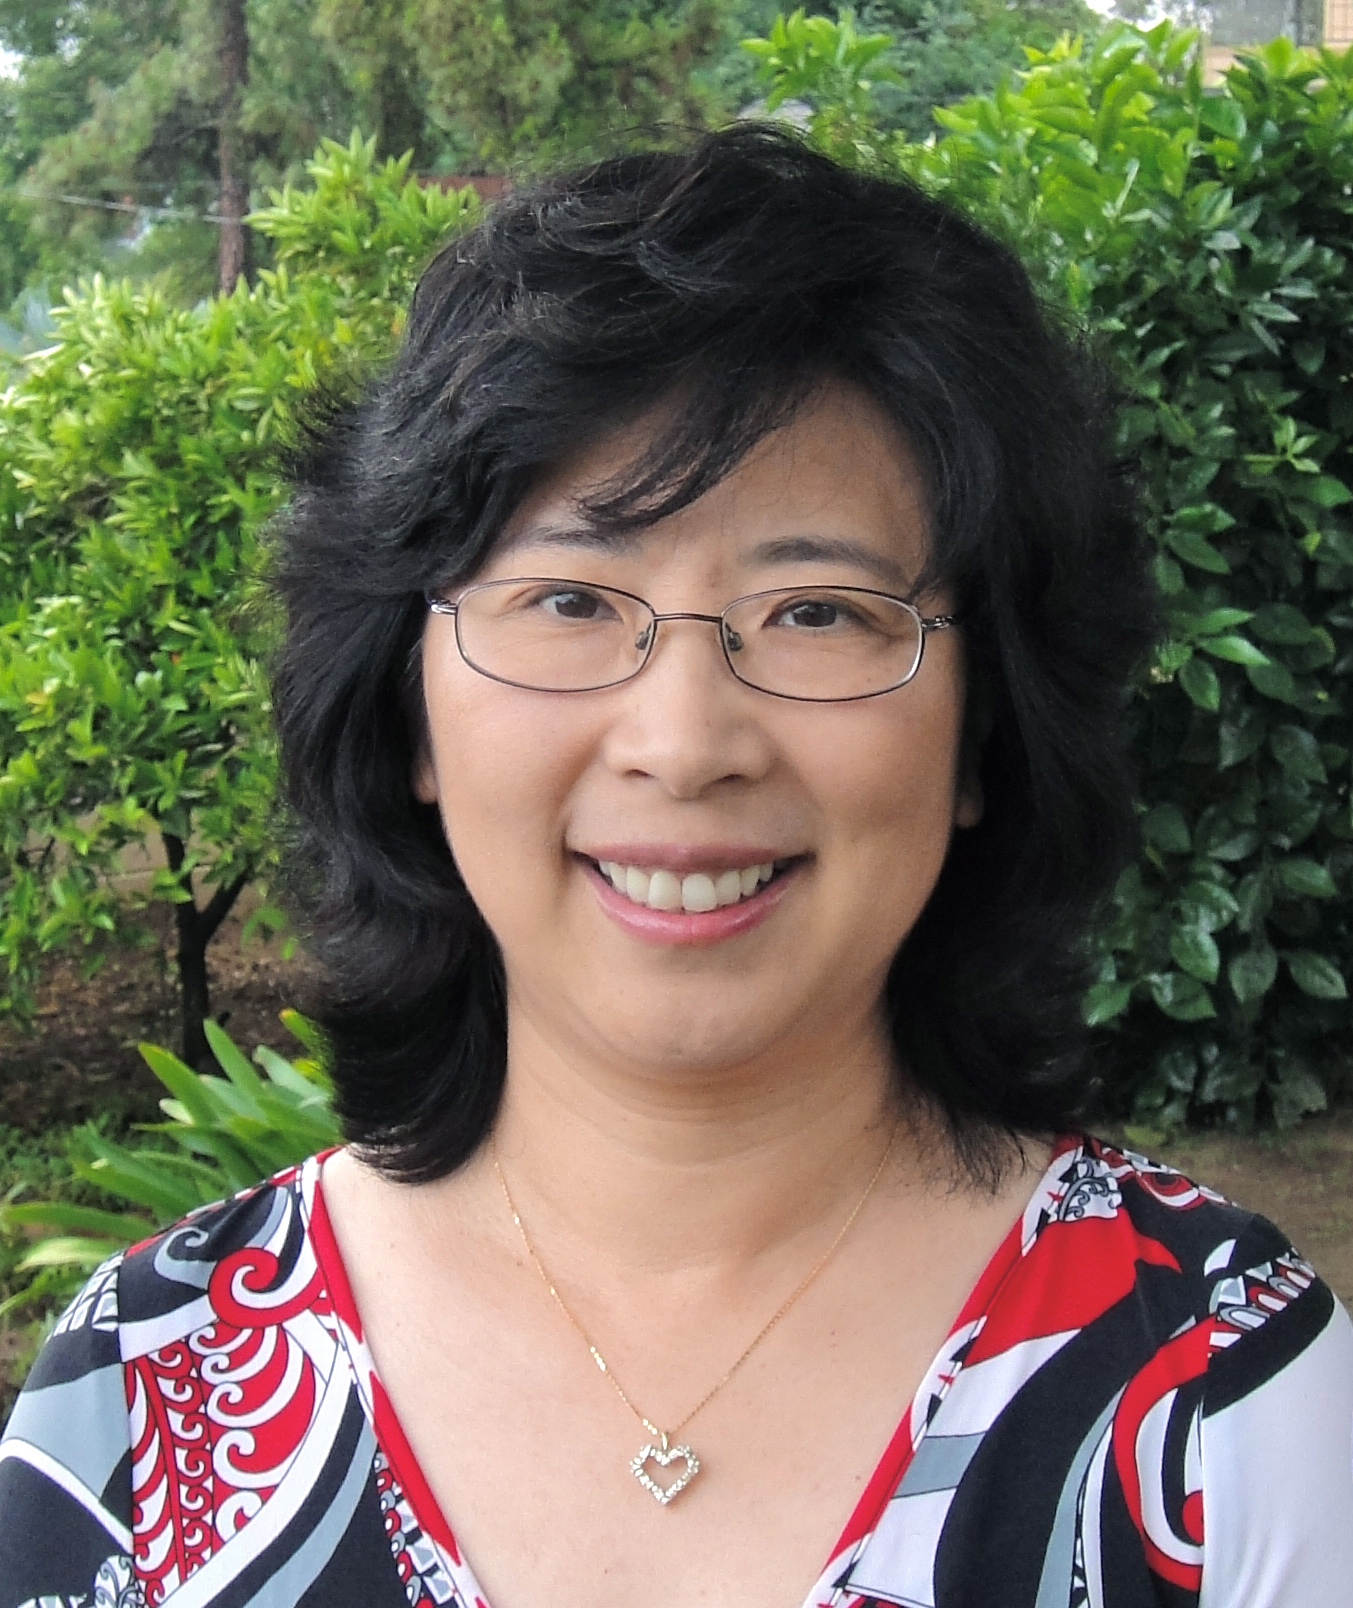 Lihua Liu, assistant professor of clinical preventive medicine at the Keck School of Medicine of USC